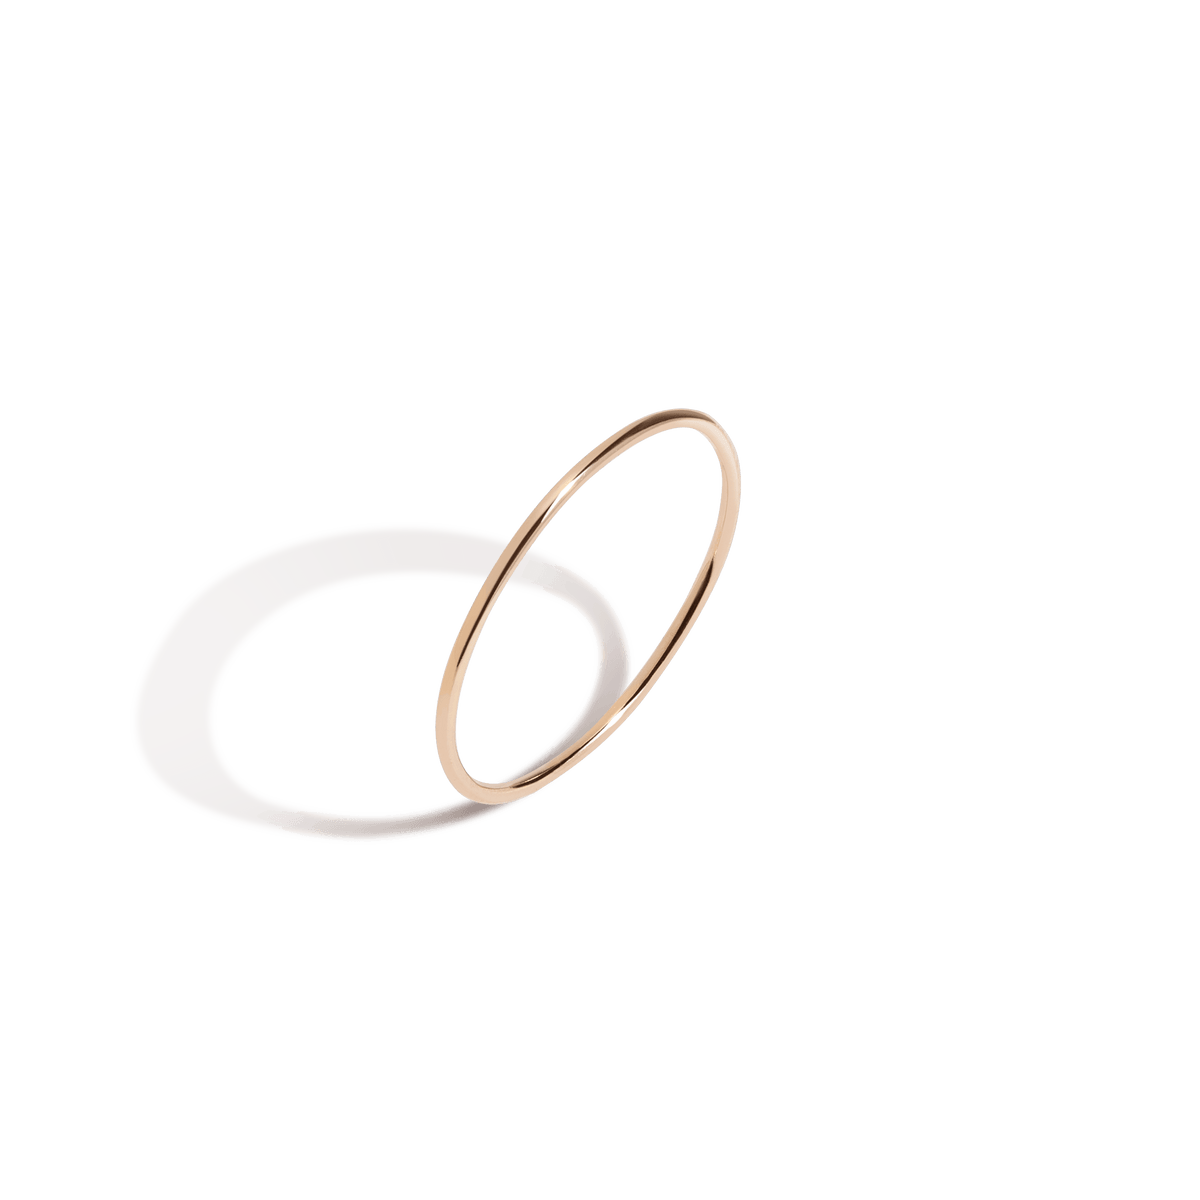 stackable ring unique ring rose gold jewlery rose gold ring gift for women Gold ring for women minimalist ring band ring stacking ring